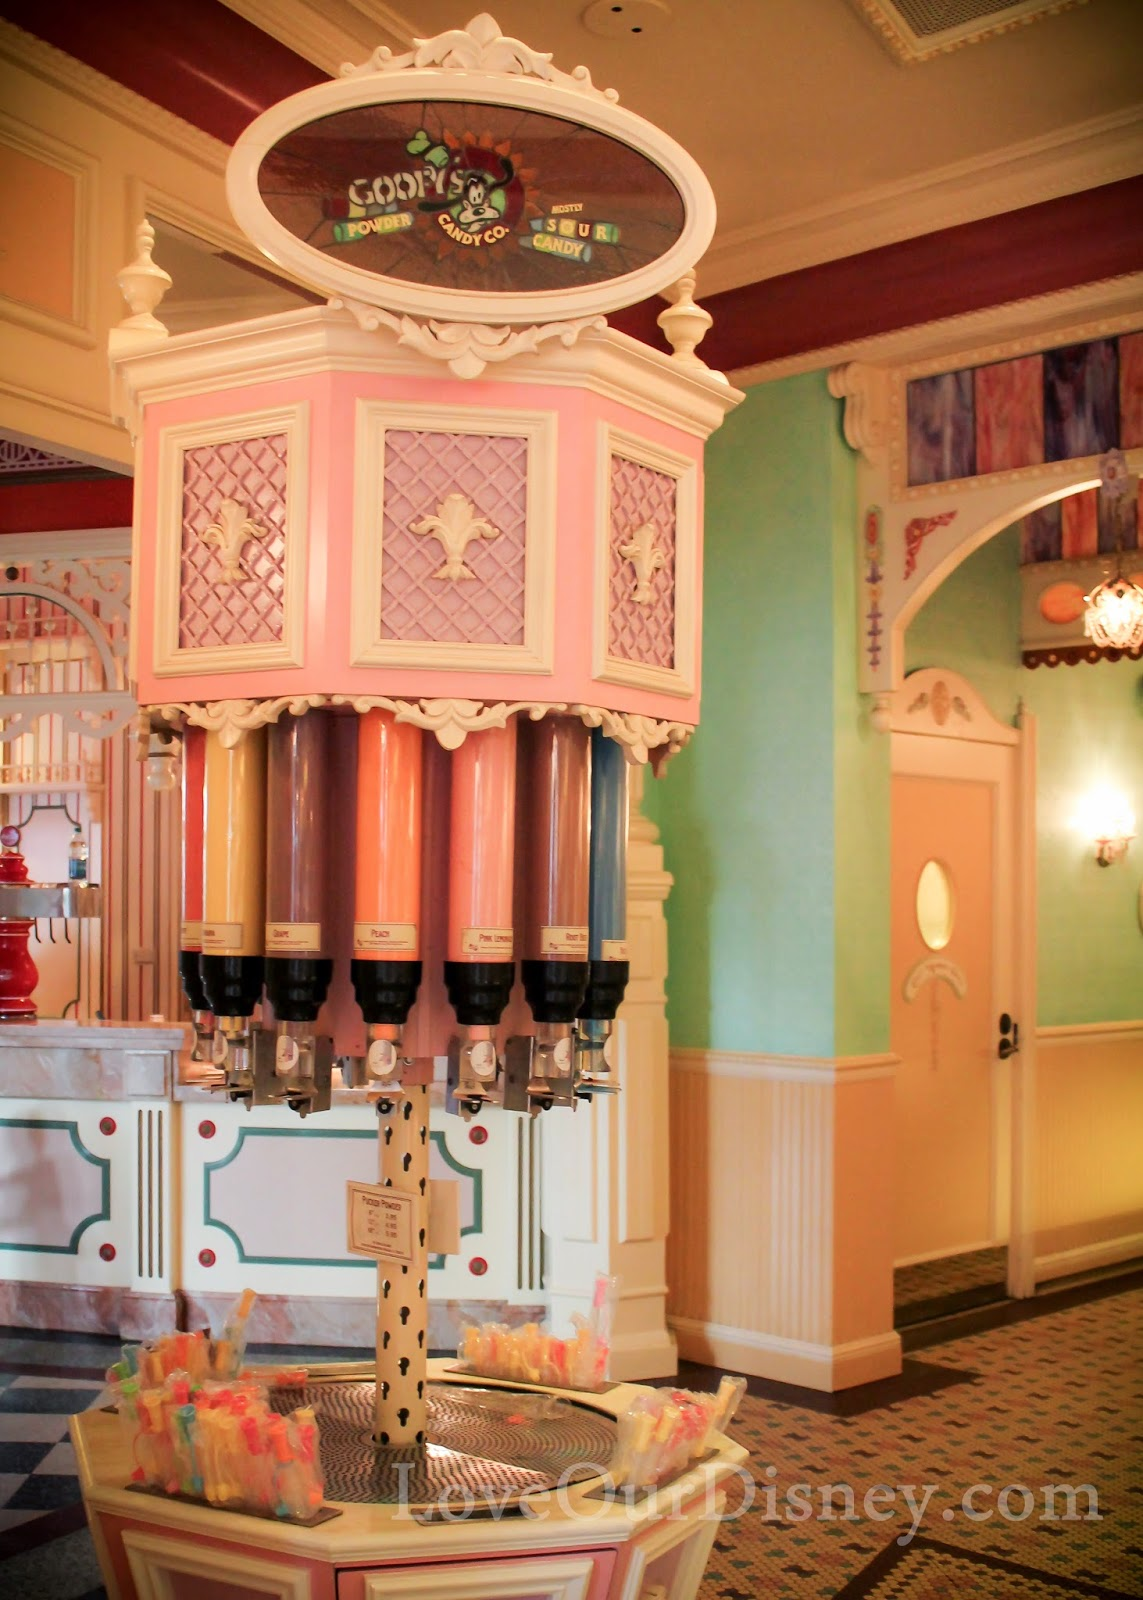 Disneyland's Candy Palace is like stepping back in time. LoveOurDisney.com